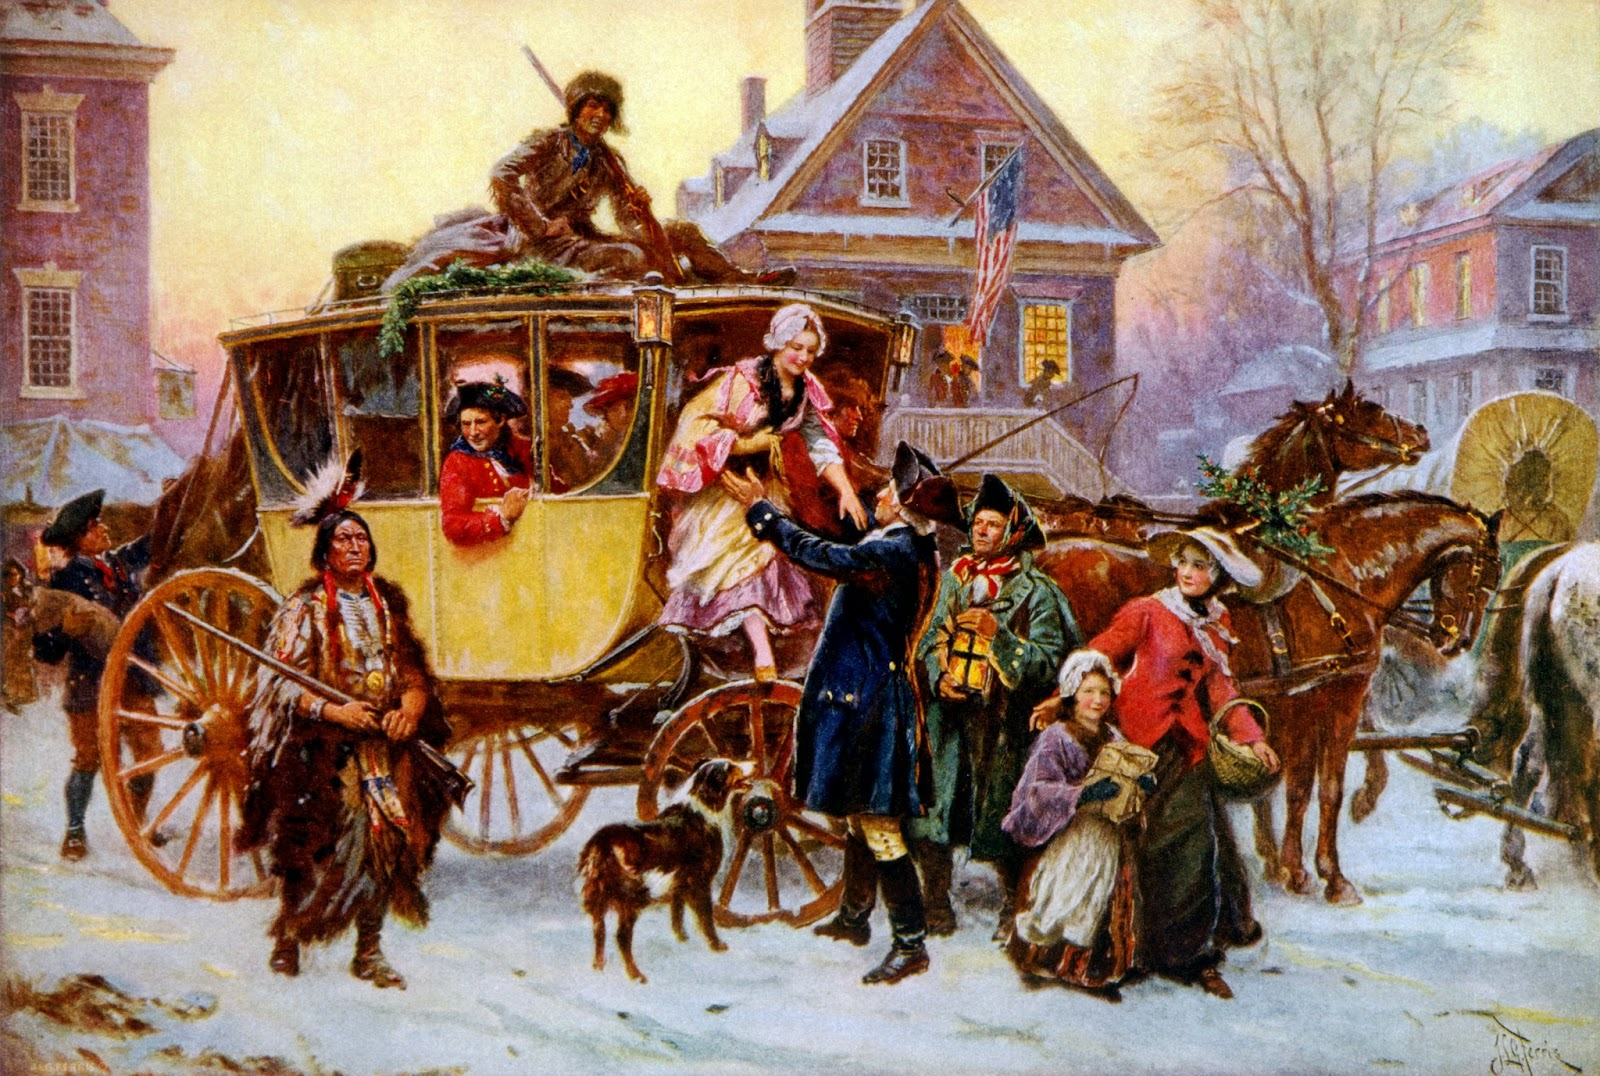 Early-American-History-Images-HD-1080p-http-wallawy-com-early-american-history-images-hd-1080p-wallpaper-wpc5804482